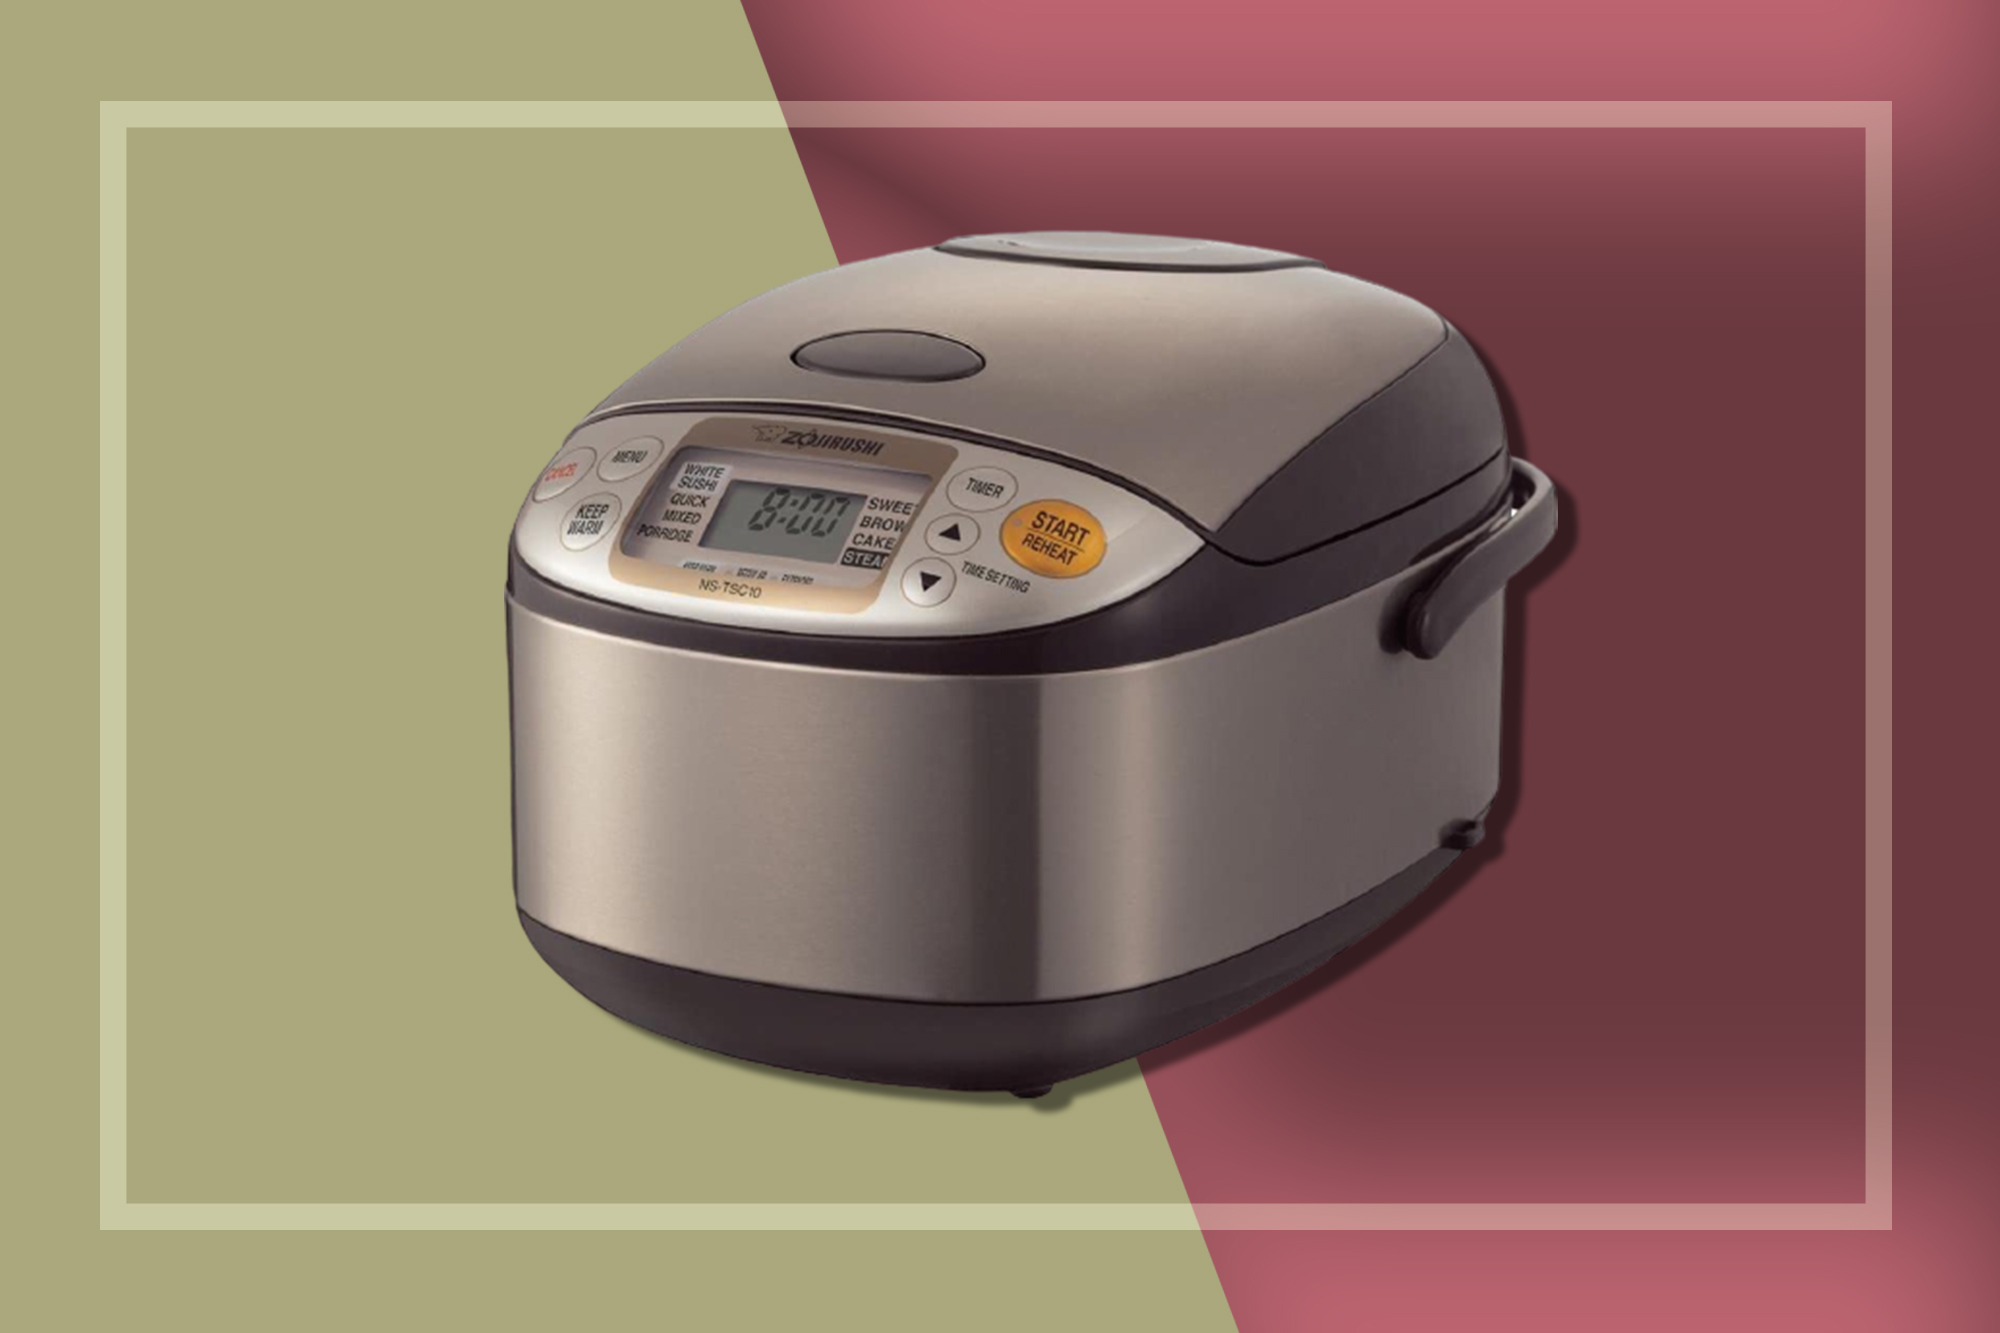 zojirushi prime day deals